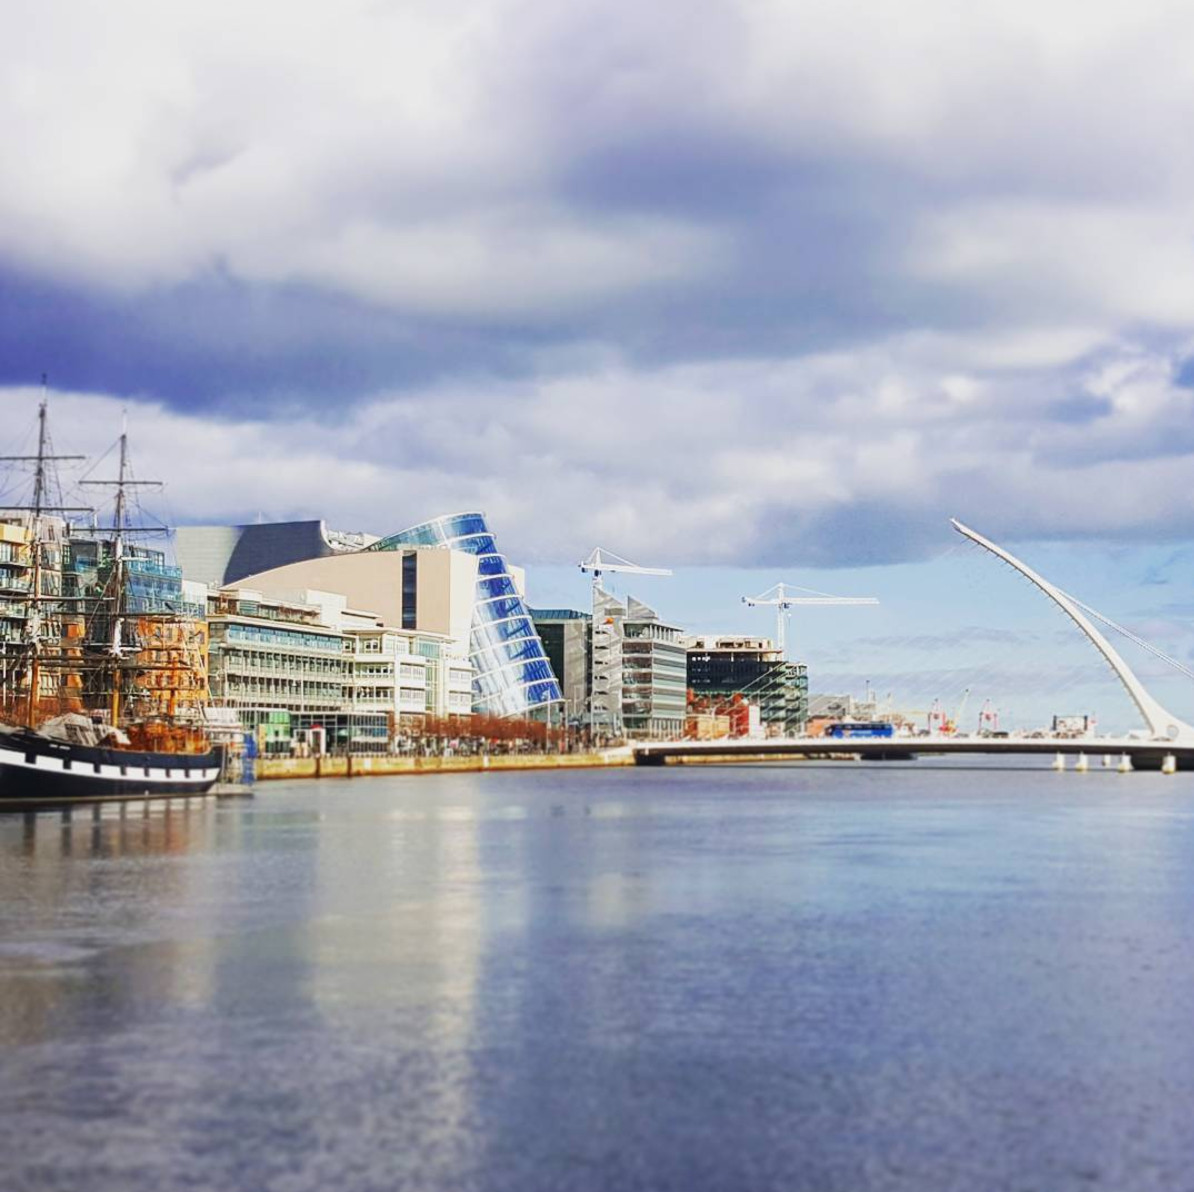 Dublin docks - A local's guide to Dublin, Ireland